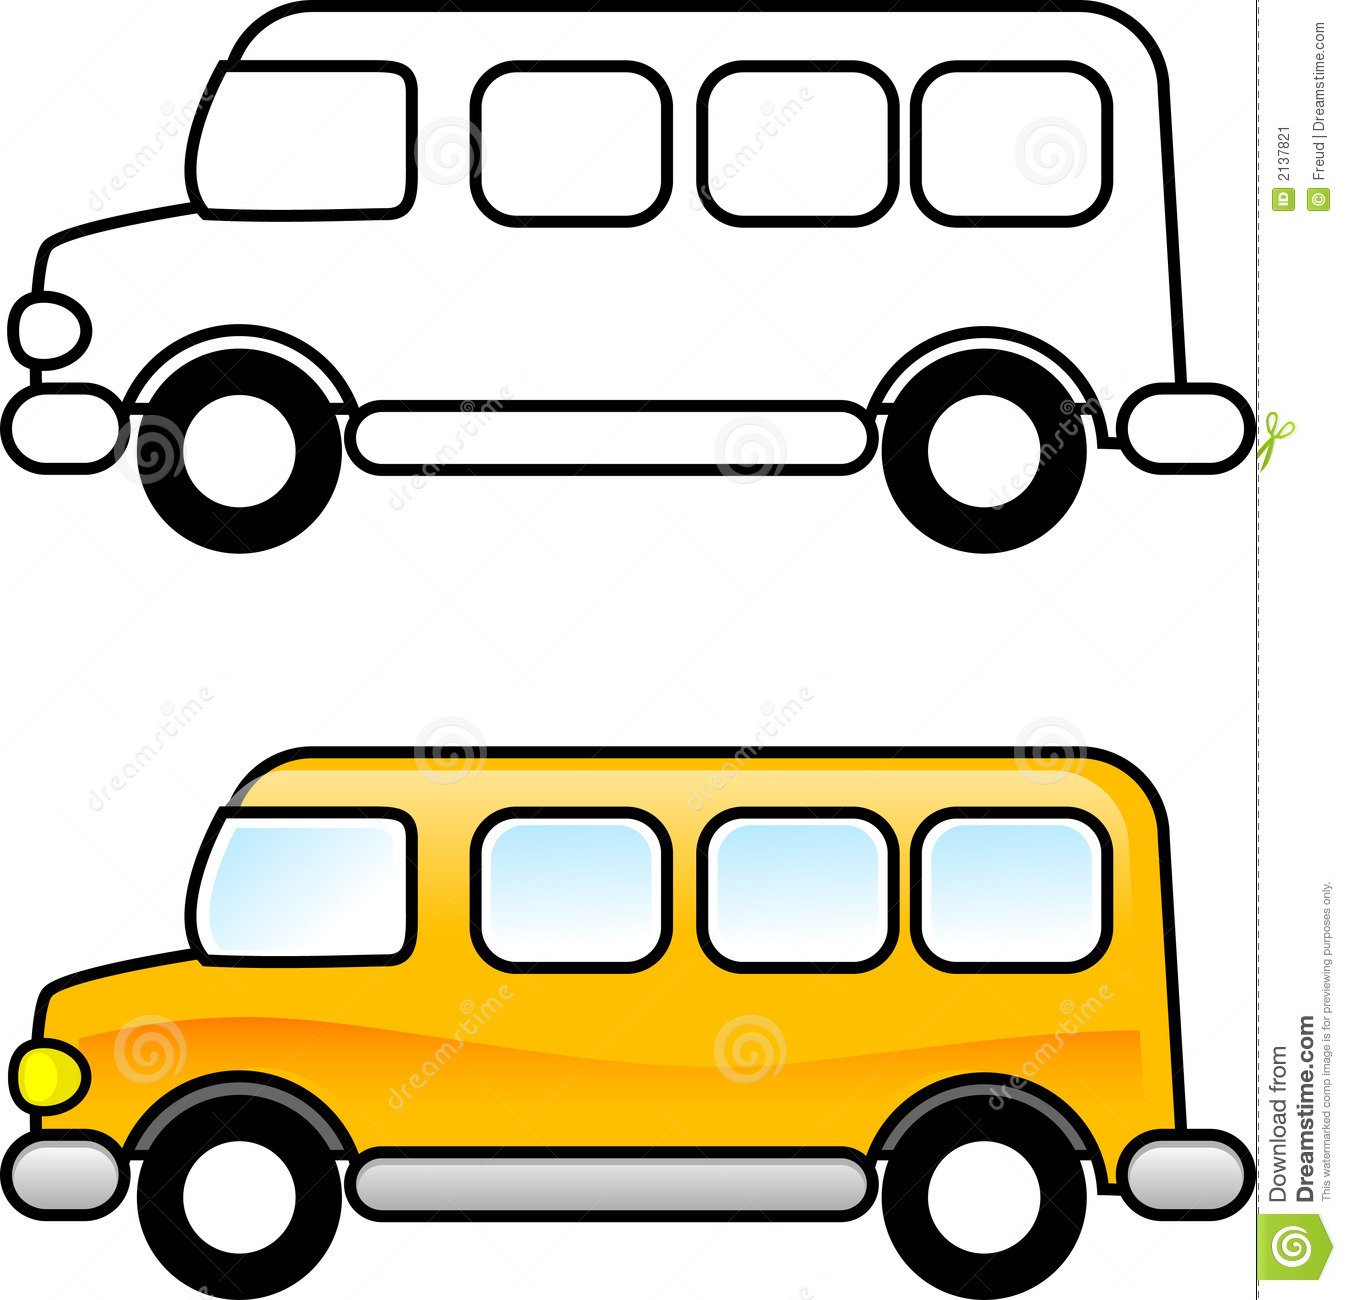 1346x1300 School bus superman clipart